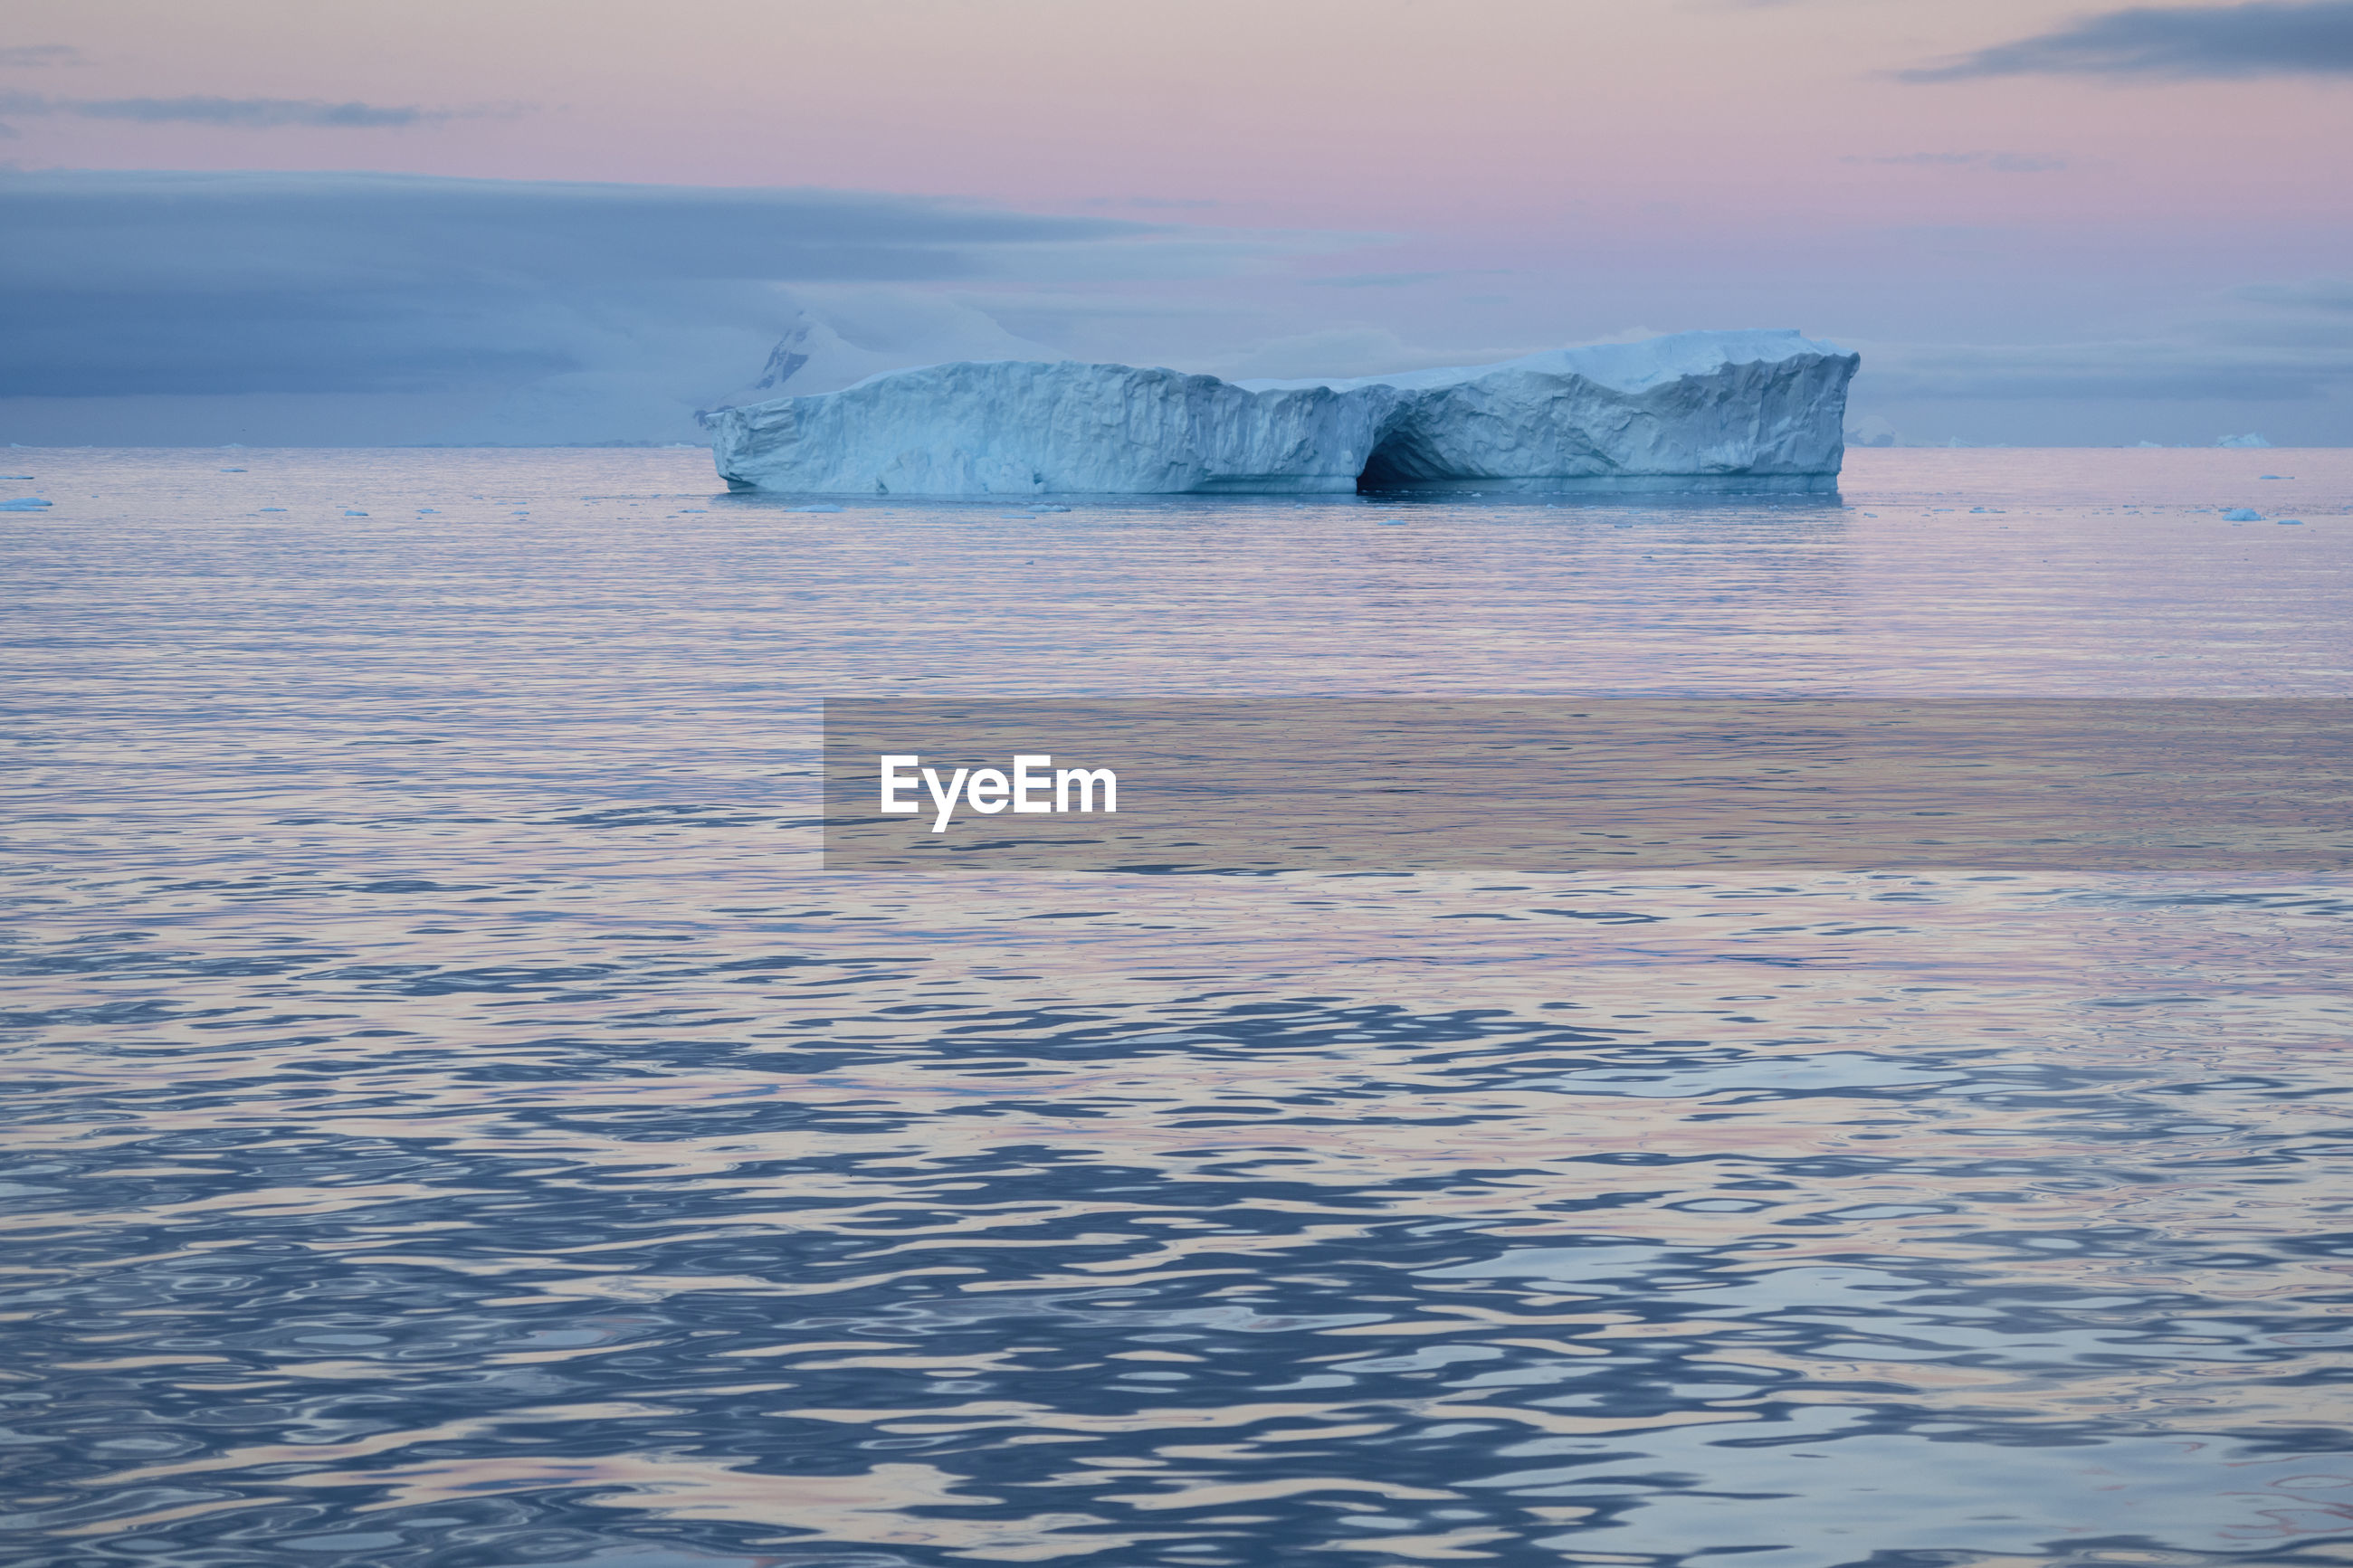 Scenic view of glacier in sea against sky during sunset